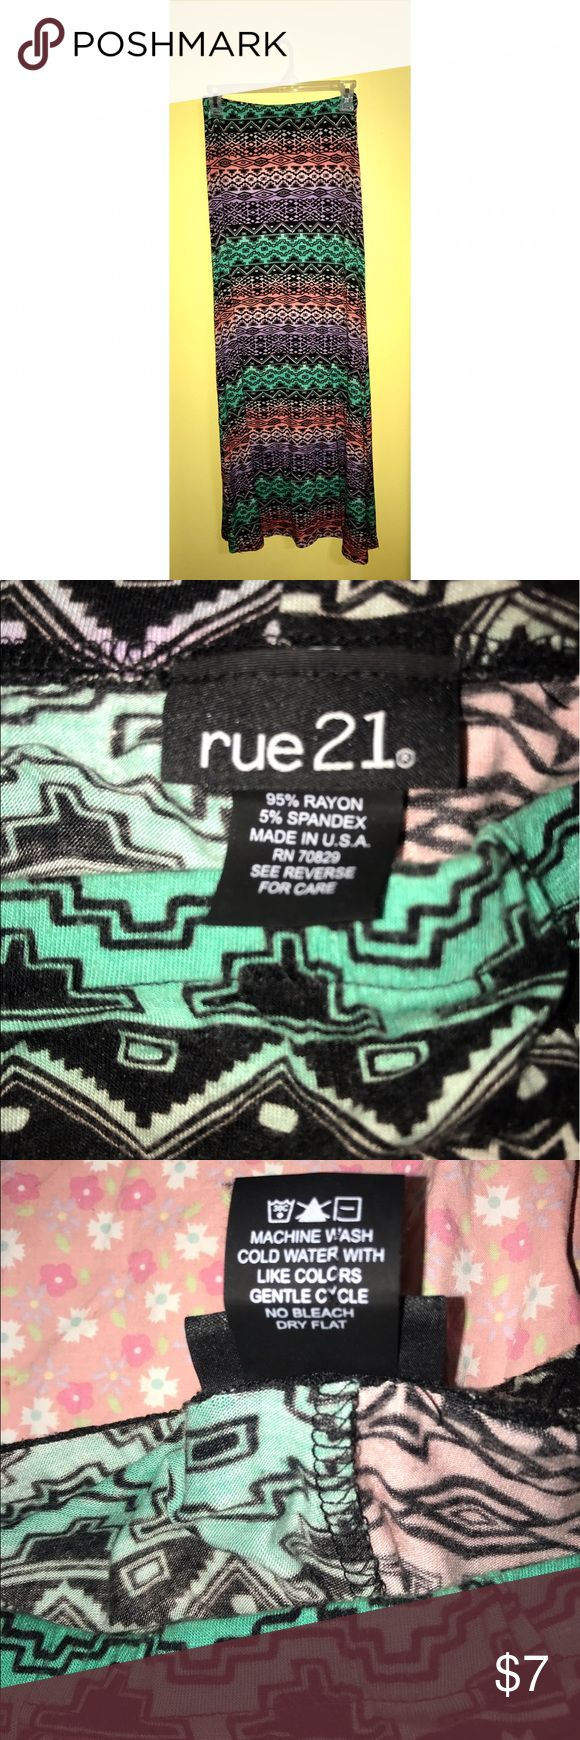 Rue21 Tribal Maxi Skirt Teal, red, and purple tribal-patterned maxi skirt from Rue21 in size medium. Rue 21 Skirts Maxi